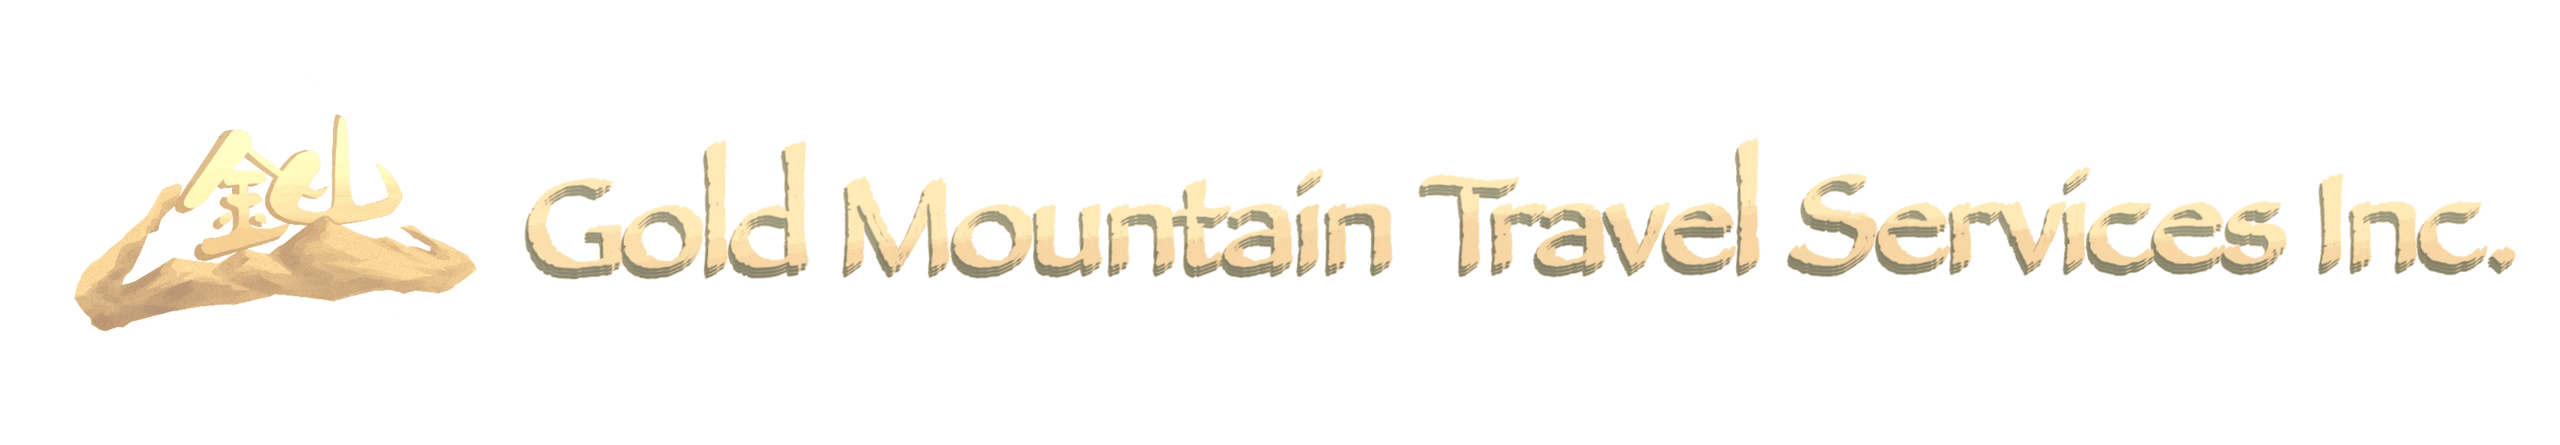 Gold Mountain Travel Services Inc.